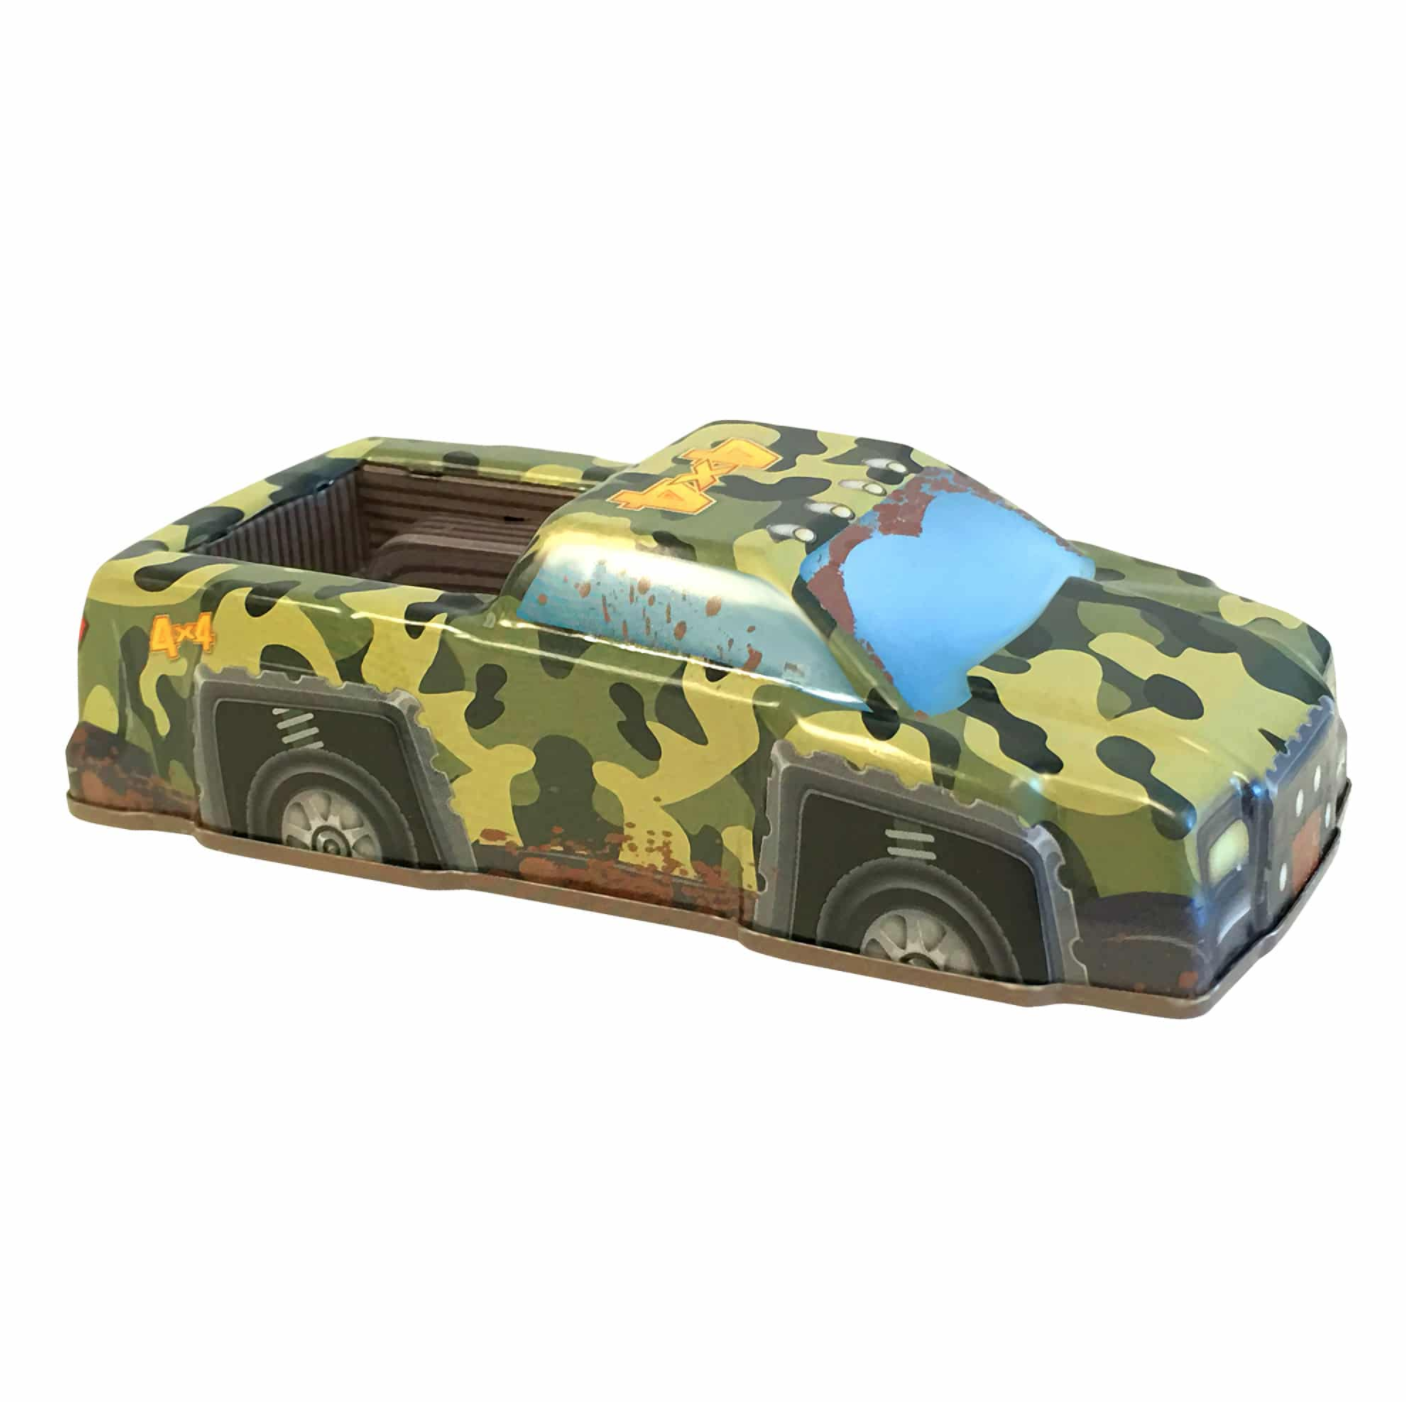 Rev-Up Racers Tin Trucks Green Camo